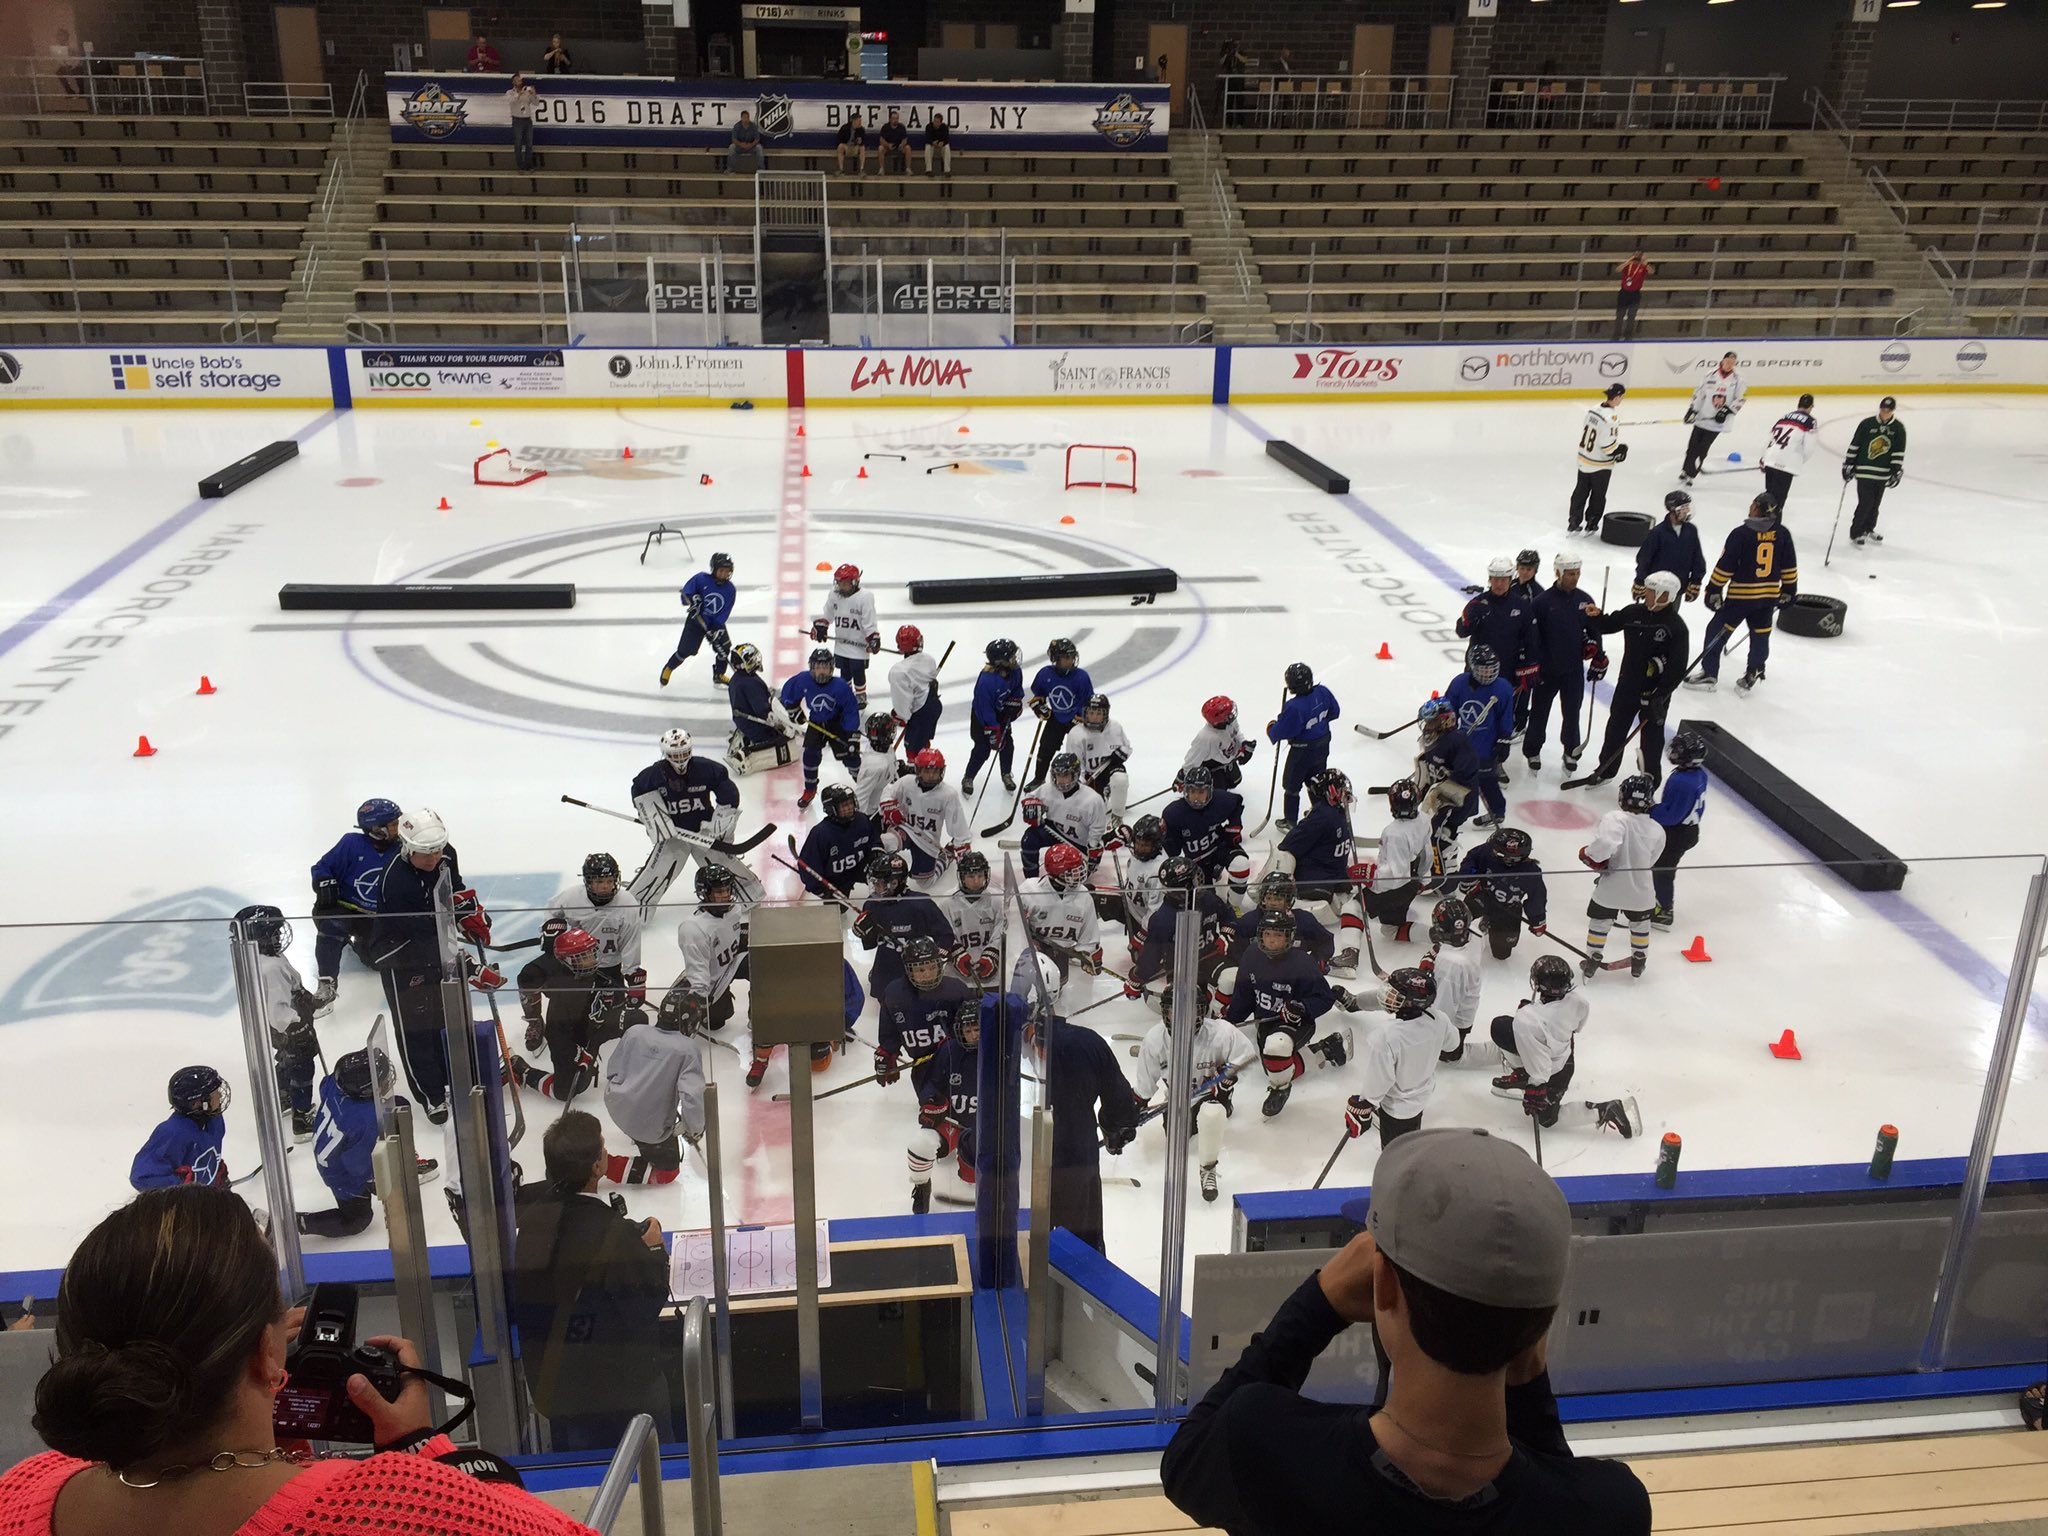 Top NHL prospects and young hockey players on the HarborCenter ice Thursday morning. (James P. McCoy/Buffalo News)